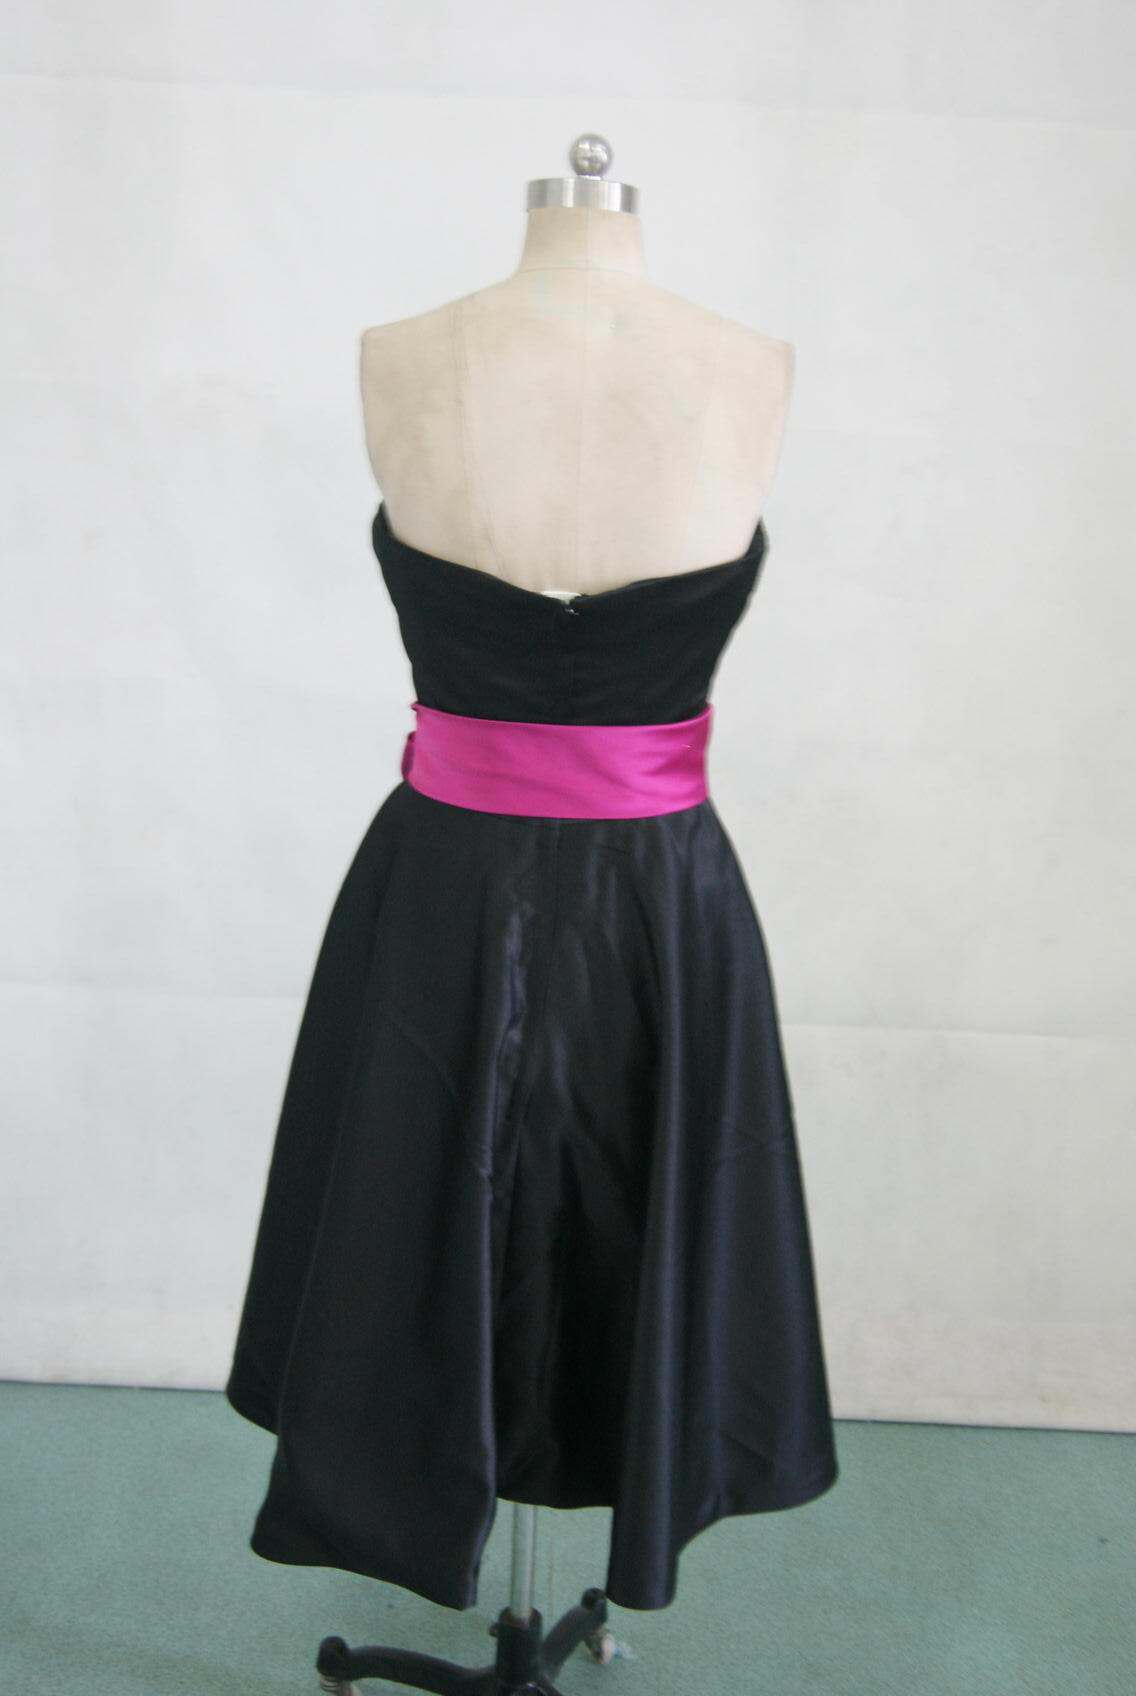 strapless short dress with fushia sash